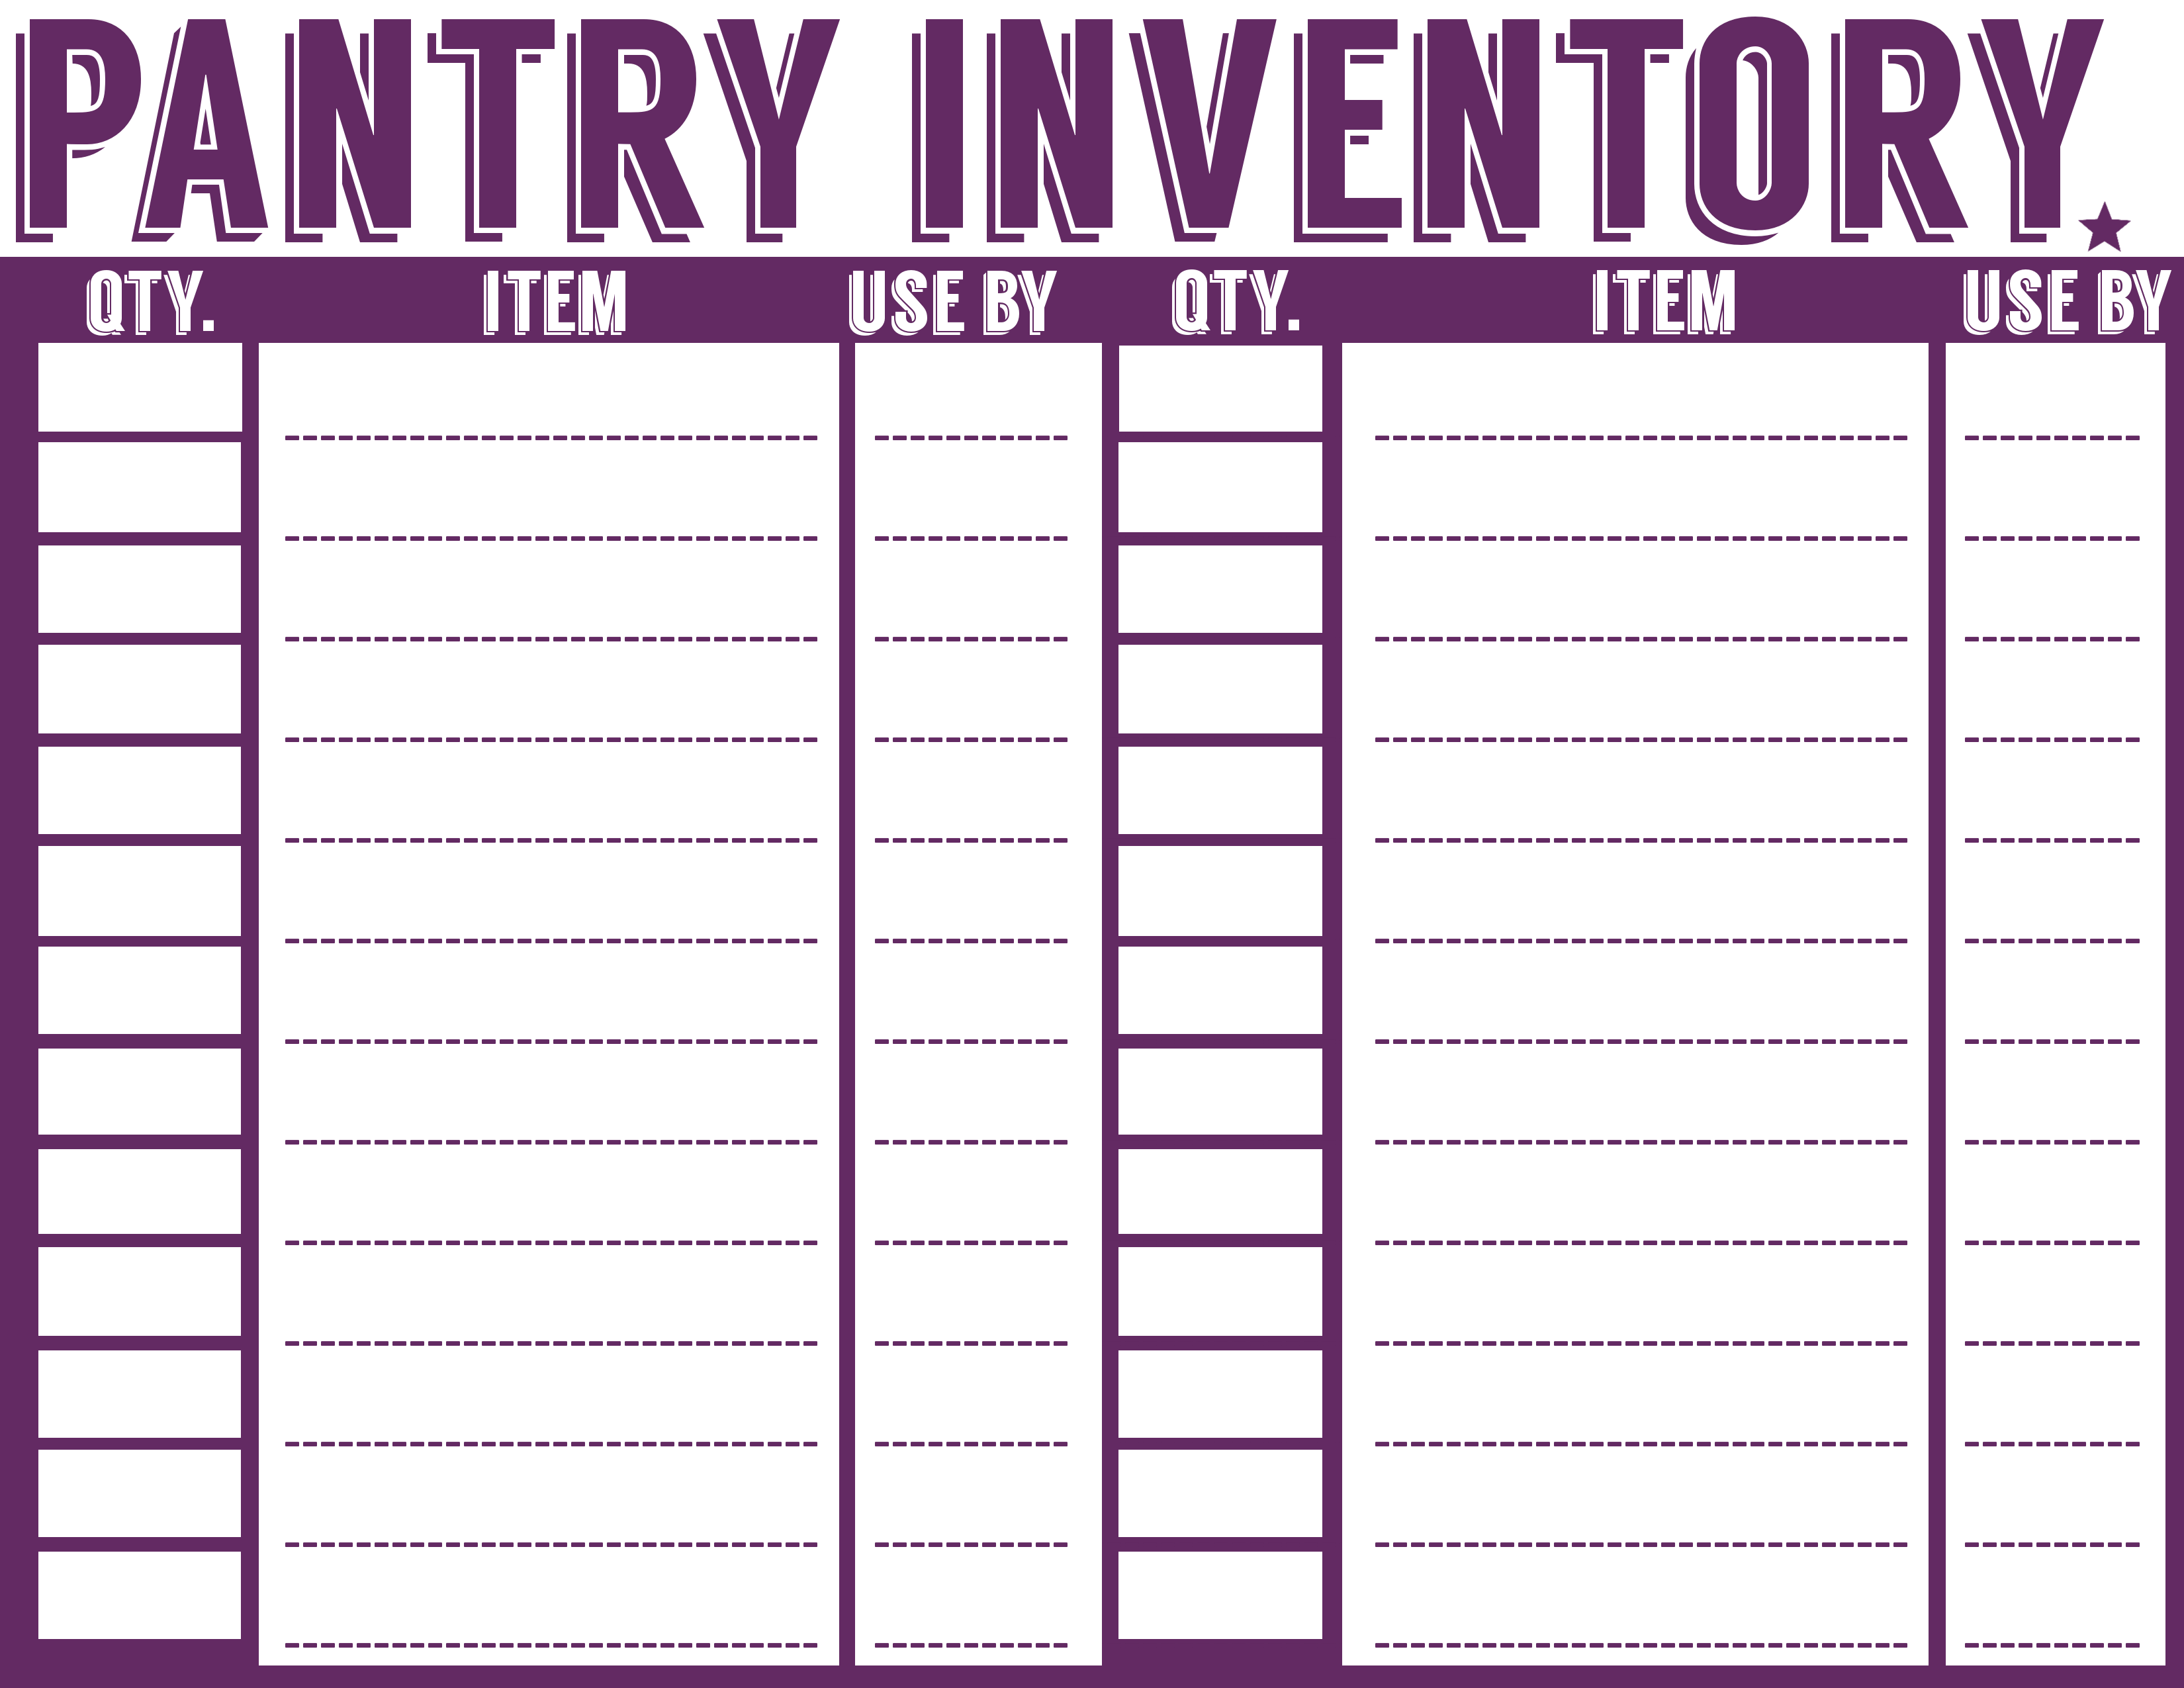 Free Printable Menu Planner, Shopping List & Inventory Sheets ...